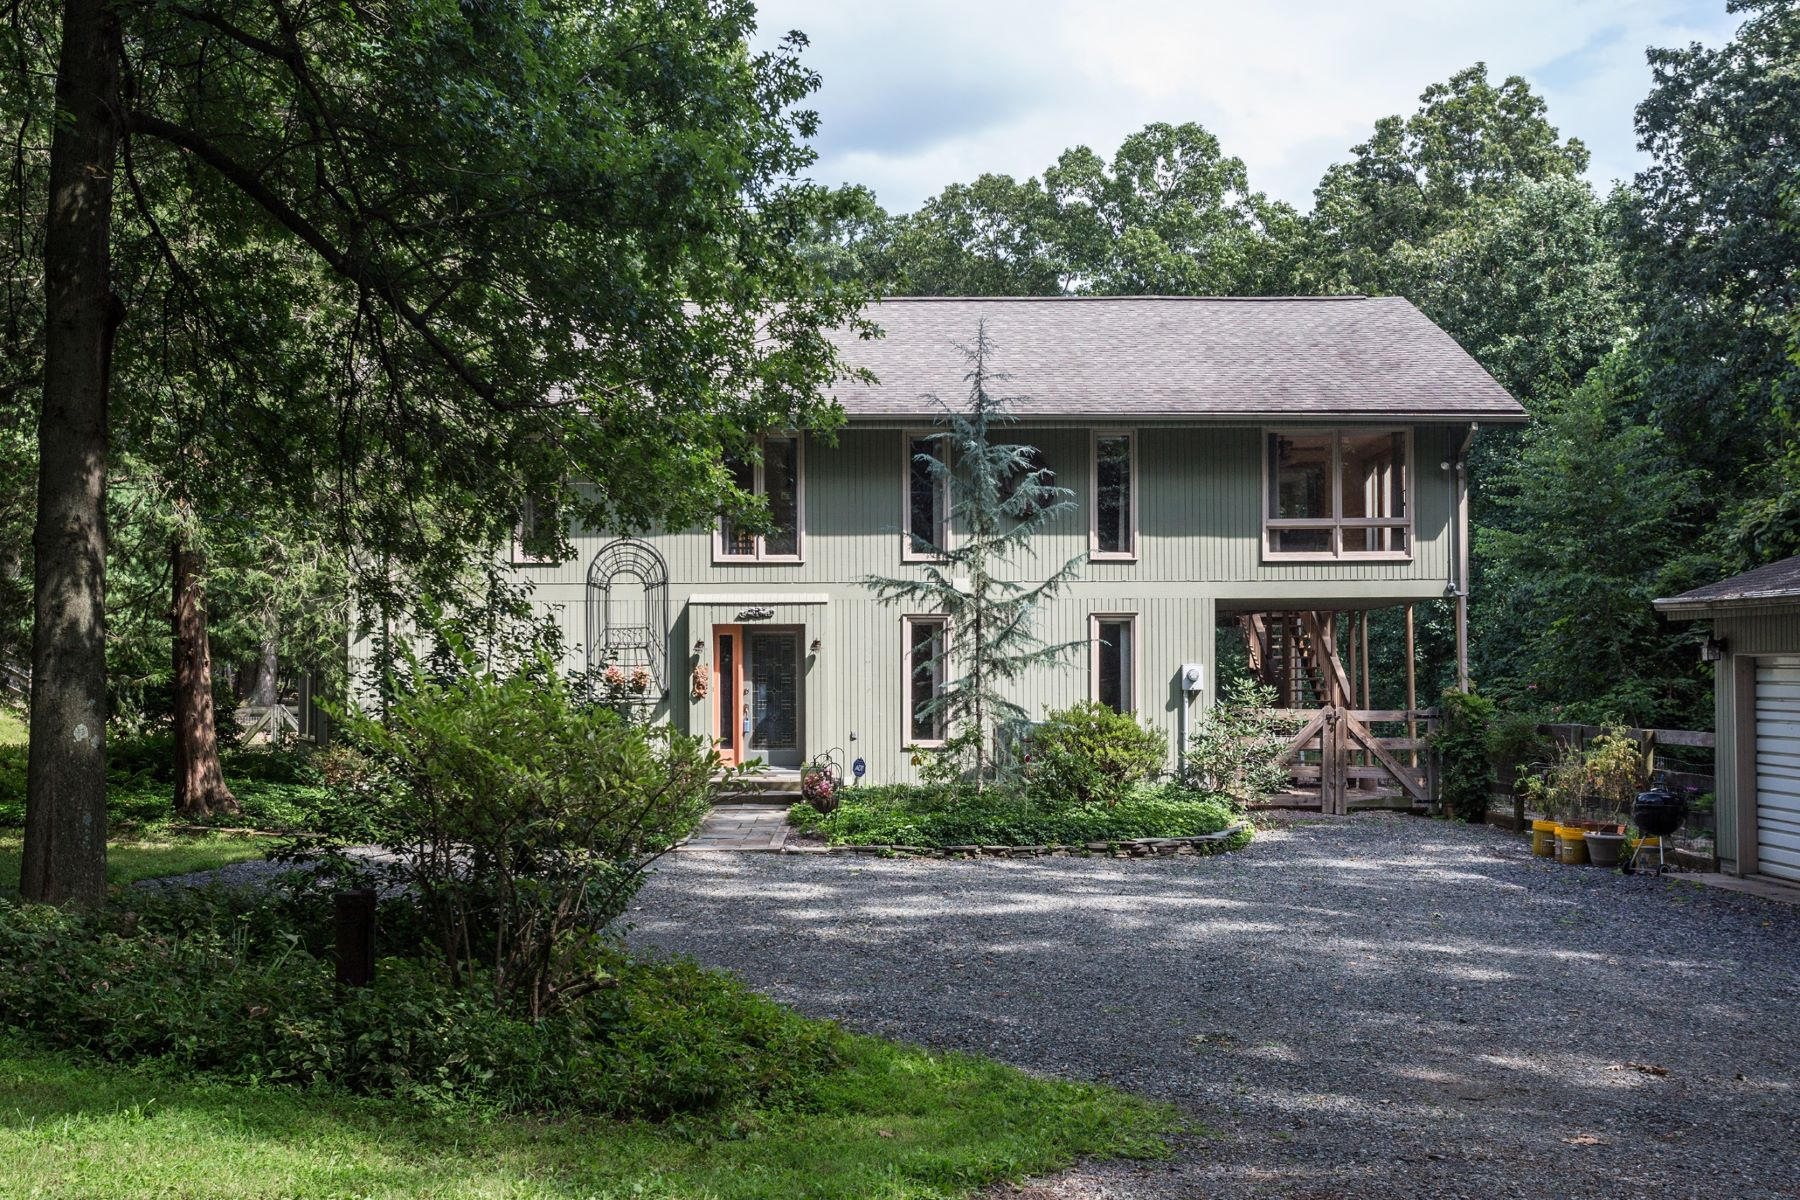 Additional photo for property listing at 2255 Deer Trl Rd  Coopersburg, Pennsylvanie 18036 États-Unis